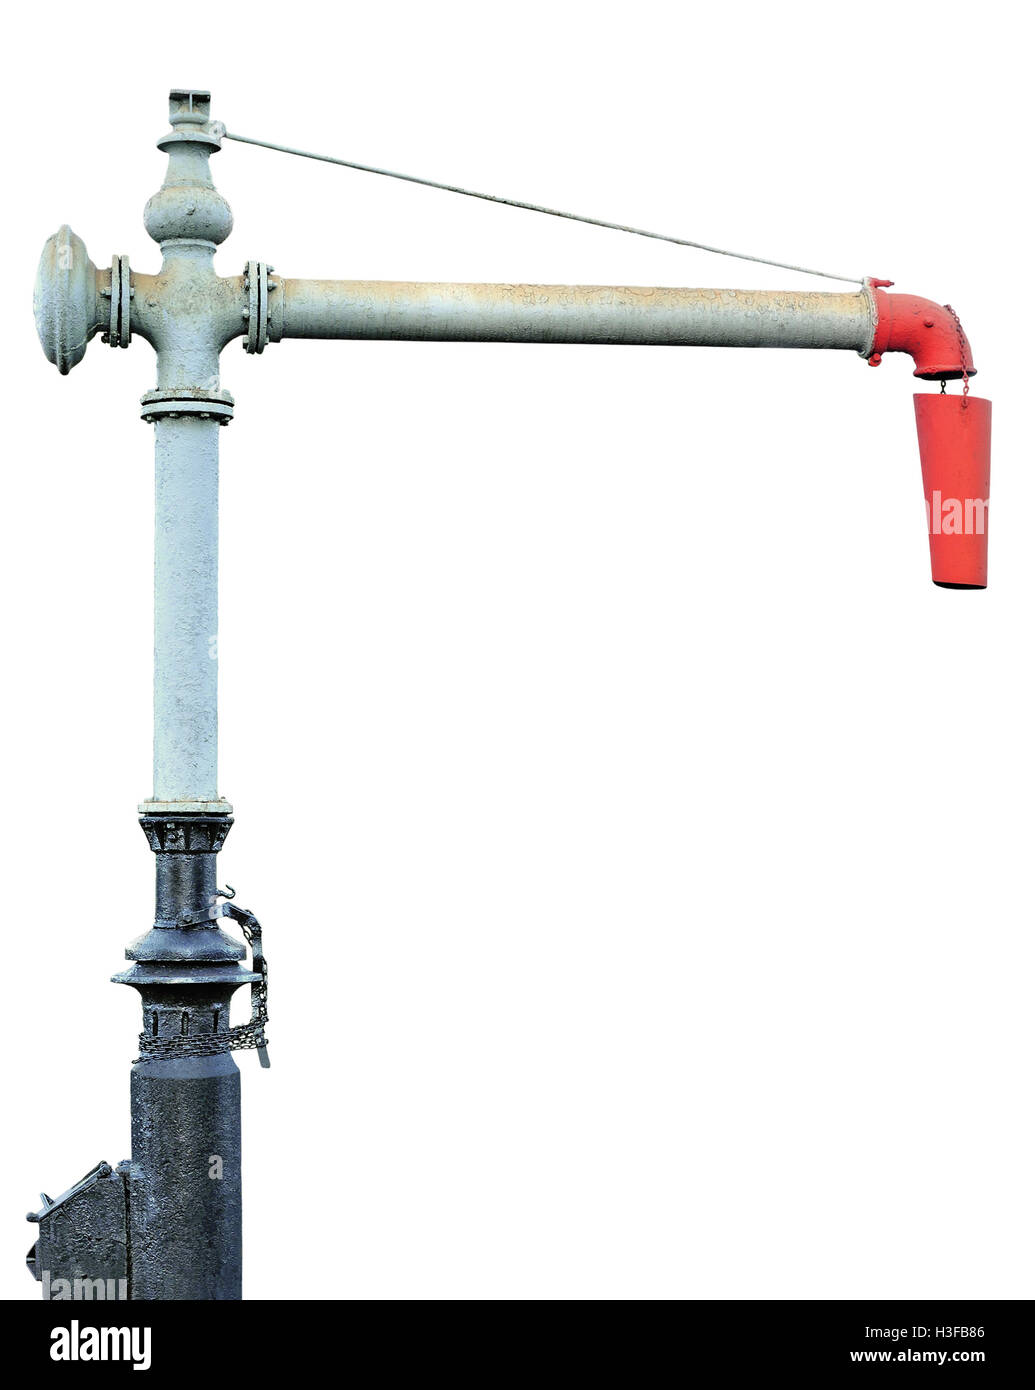 Steam Train Locomotive Engine Water Crane Column Standpipe Spout, Railroad Station Railway Tracks Watering Supply - Stock Image